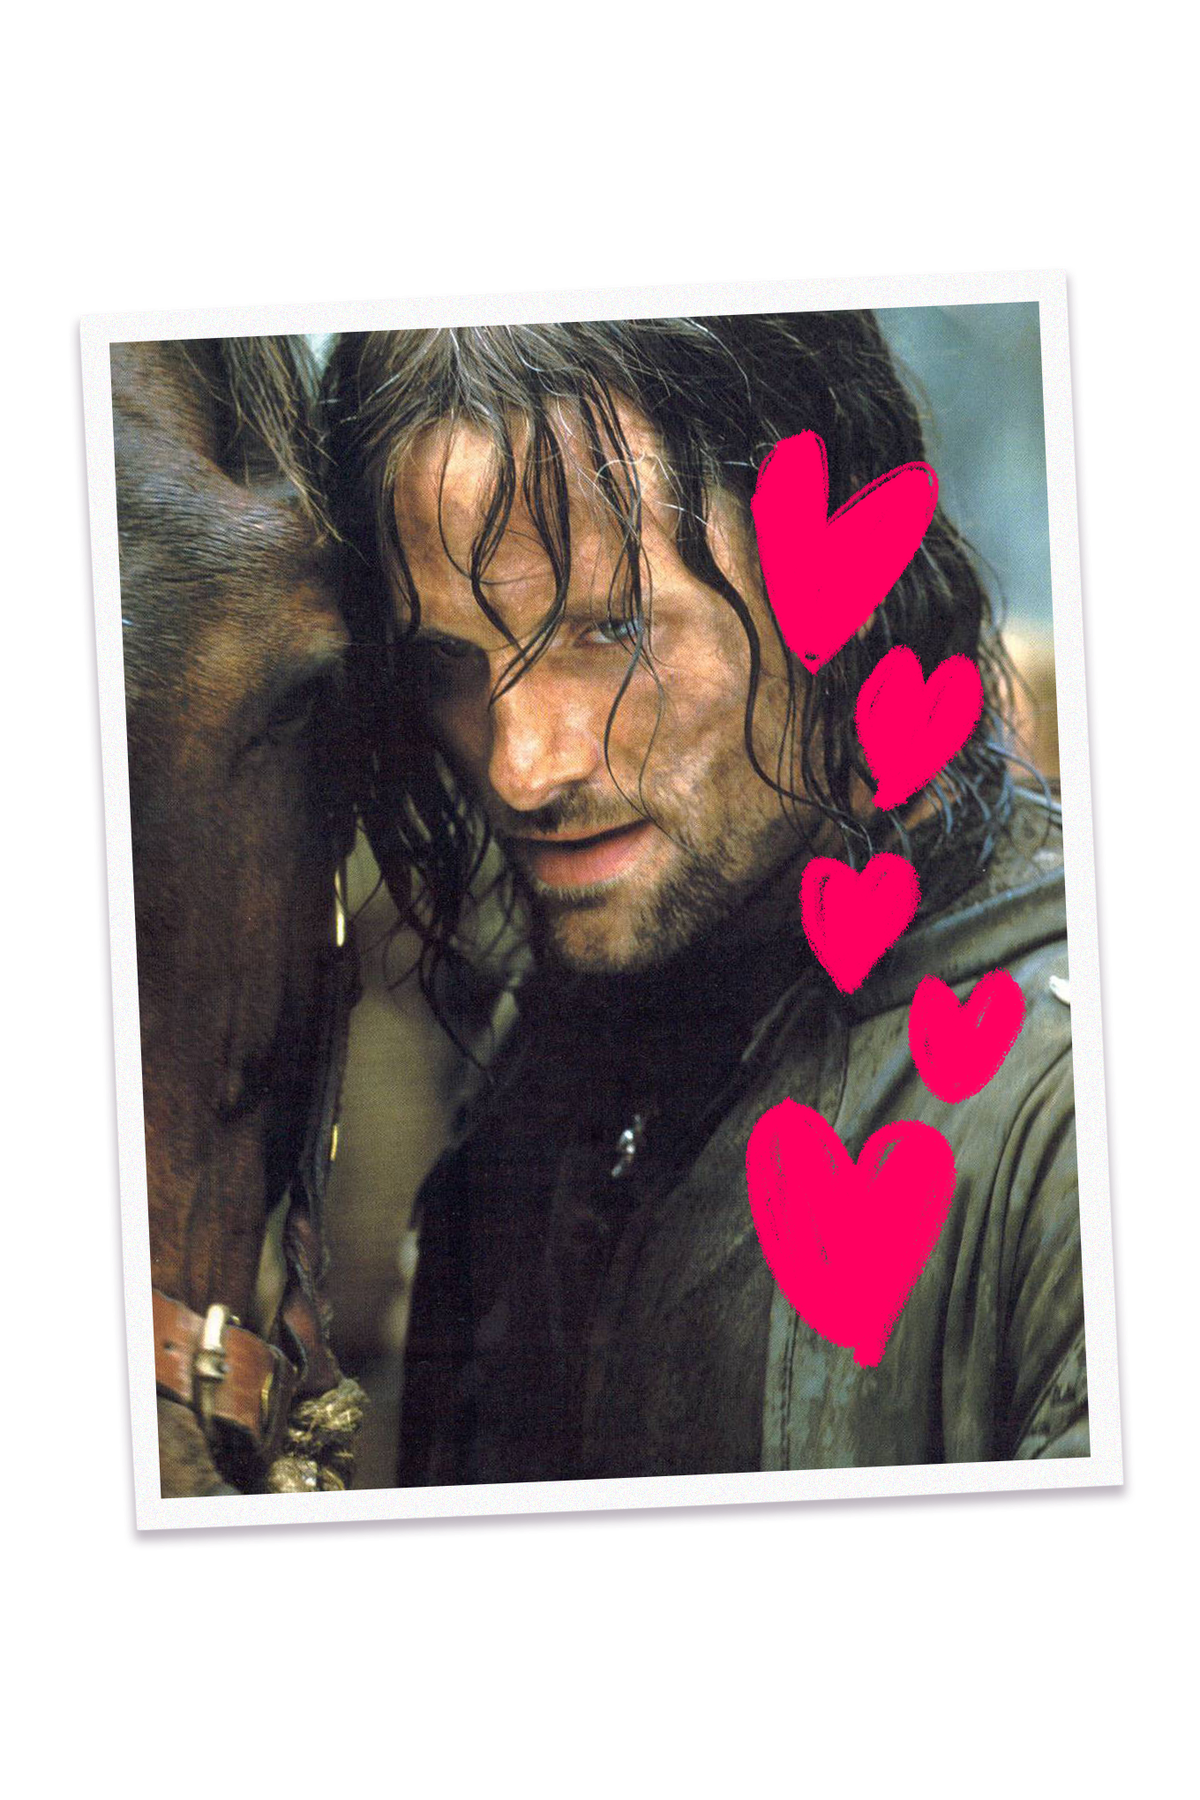 Photo of Viggo Mortensen as Aragorn in the Lord of the Rings movie trilogy